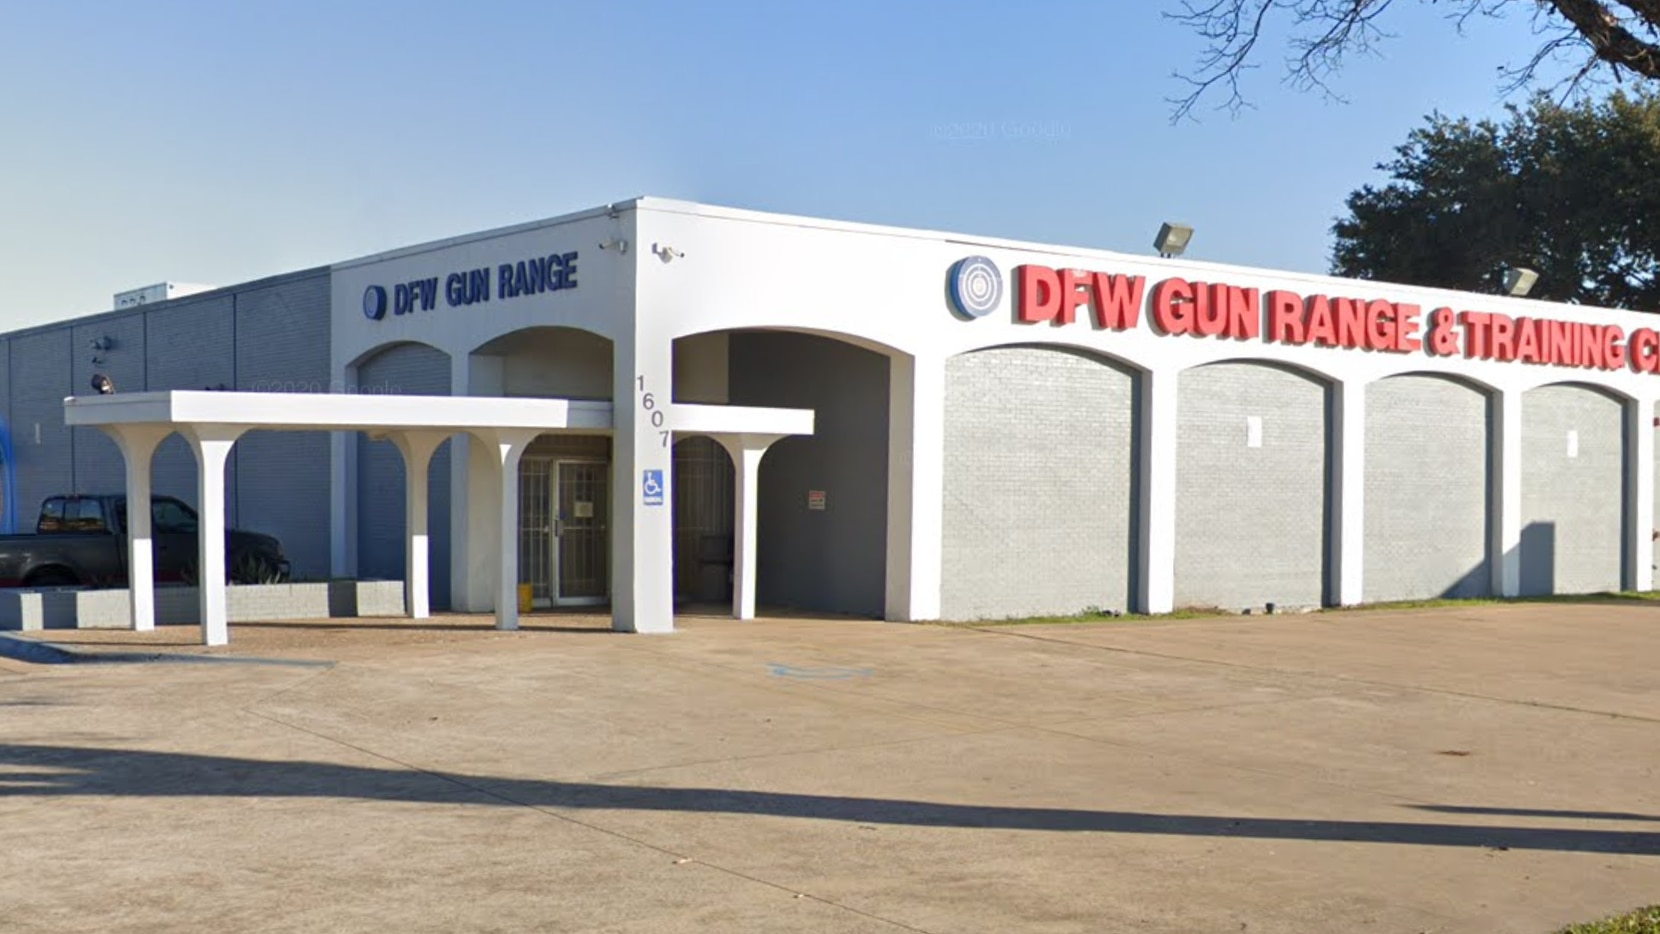 Thieves took dozens of guns from DFW Gun Range early Sunday.